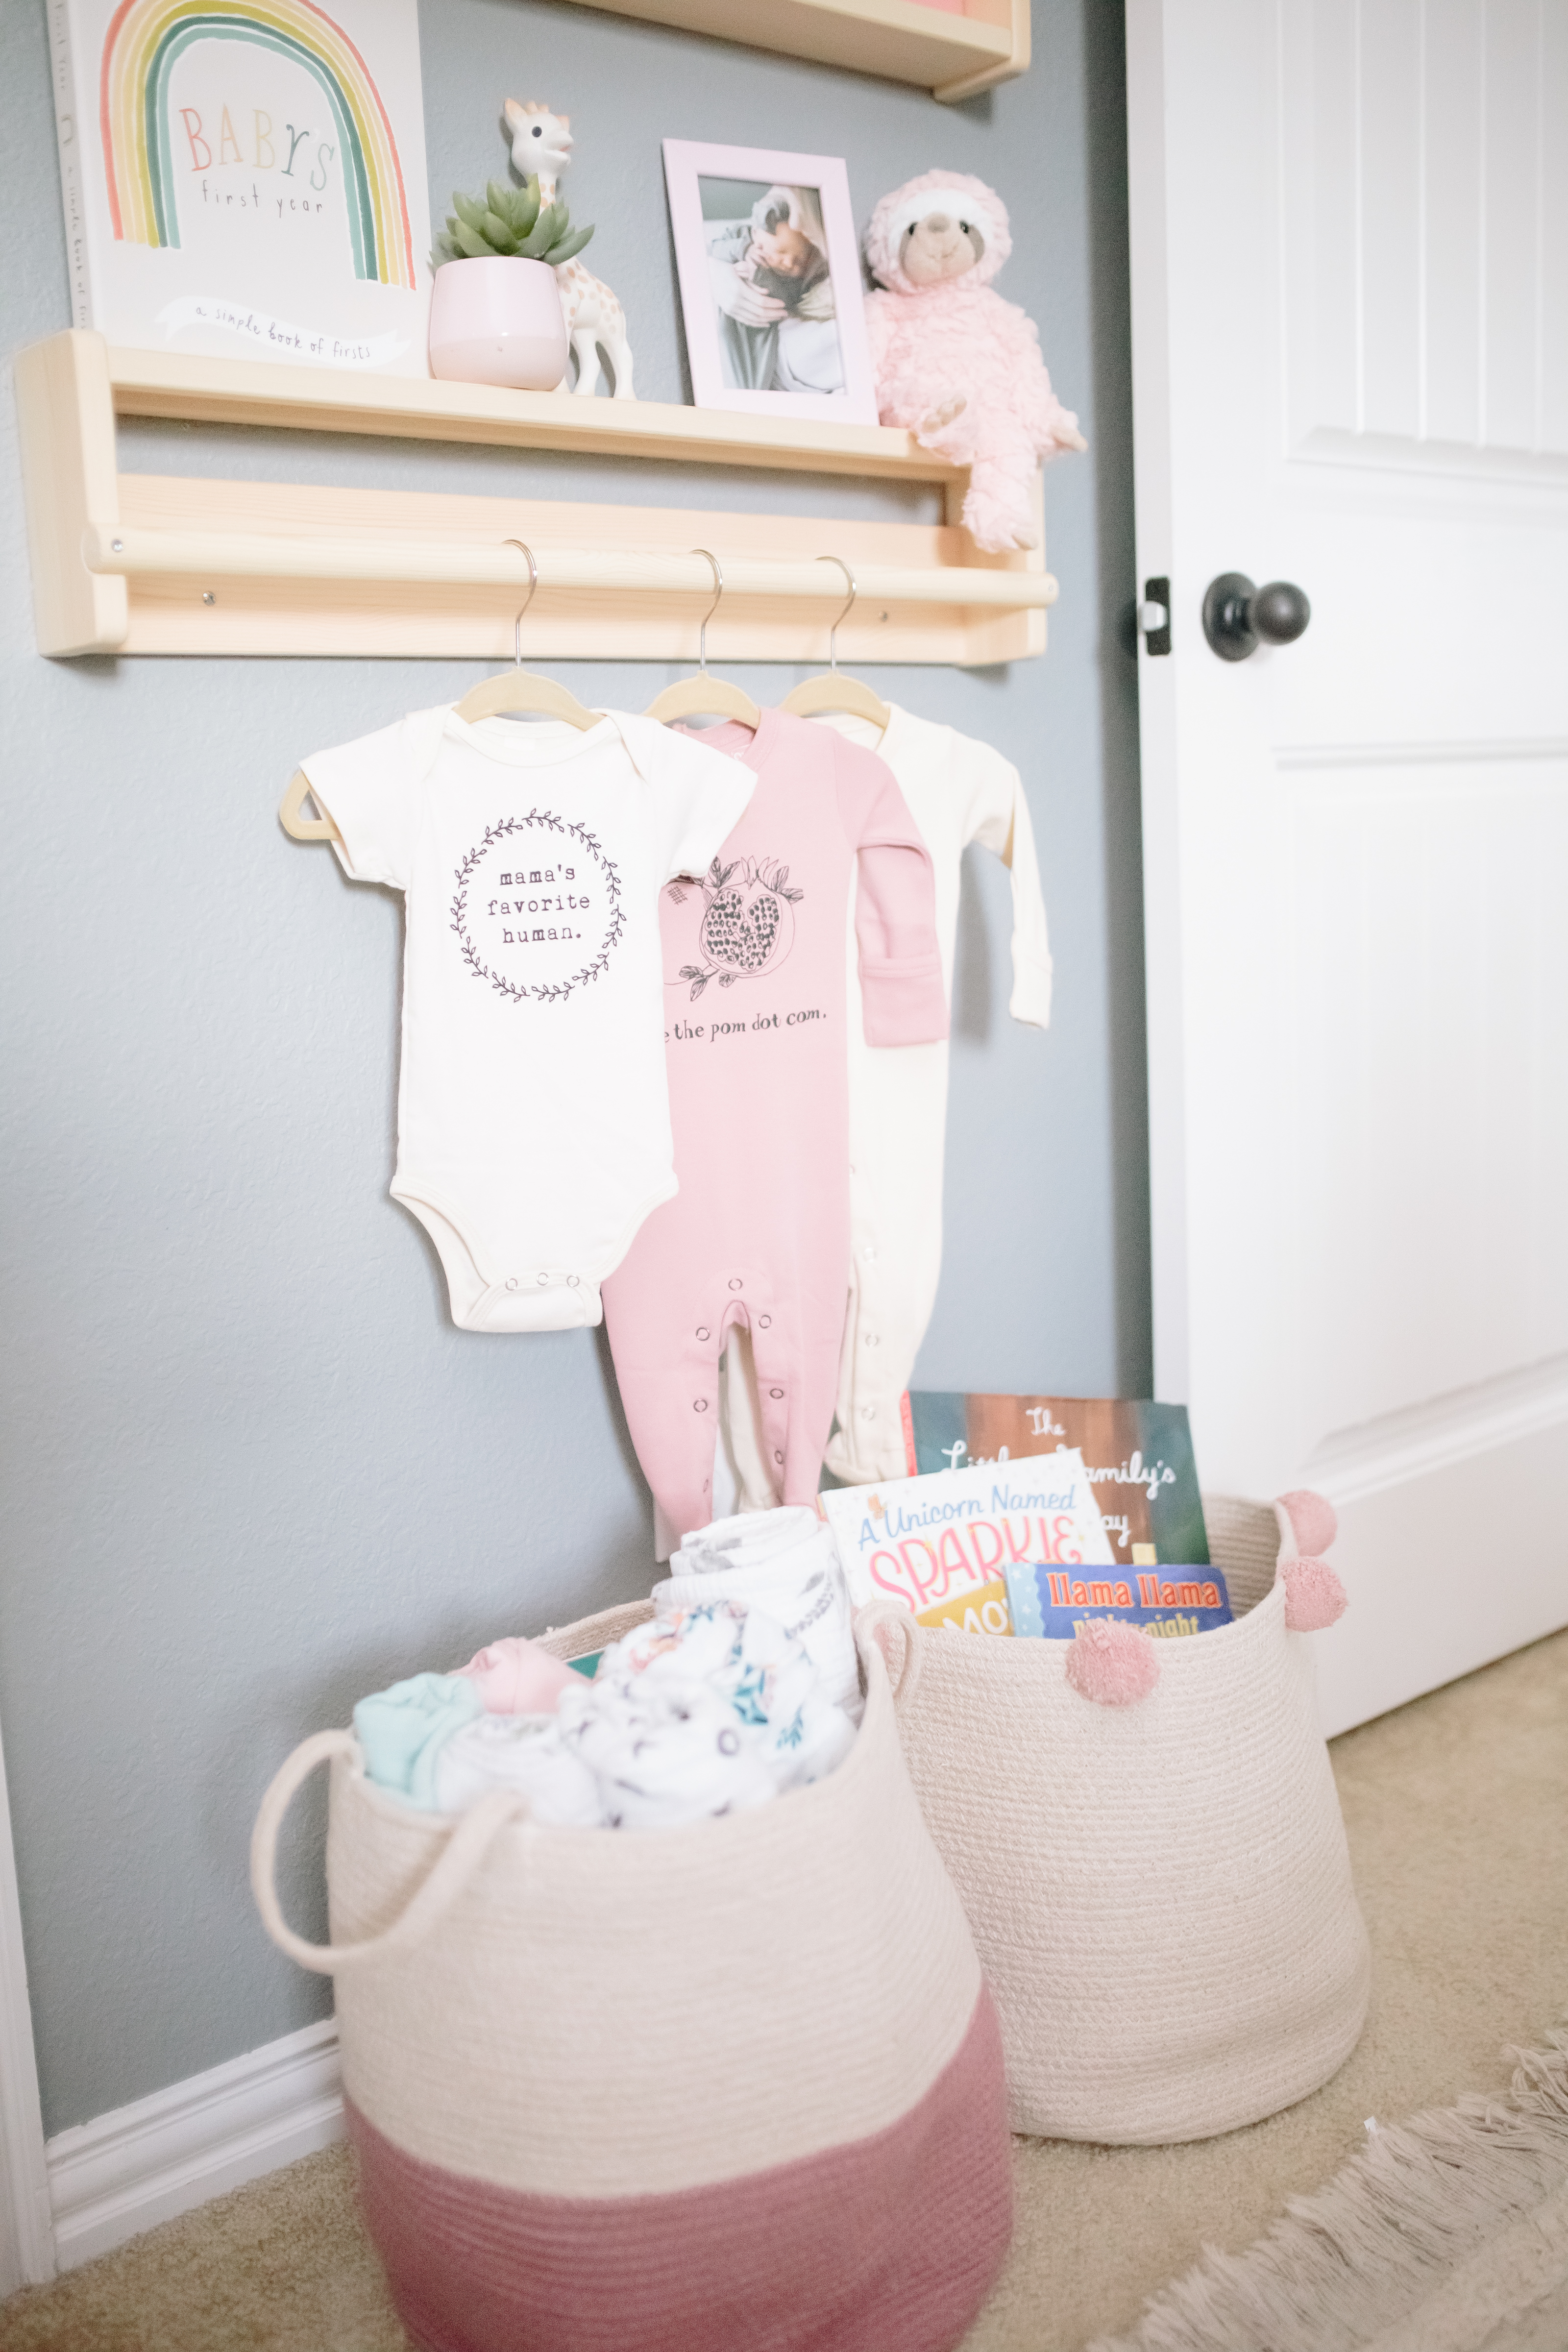 Nursery Shelving with Clothes Hanging Rod and Storage Baskets